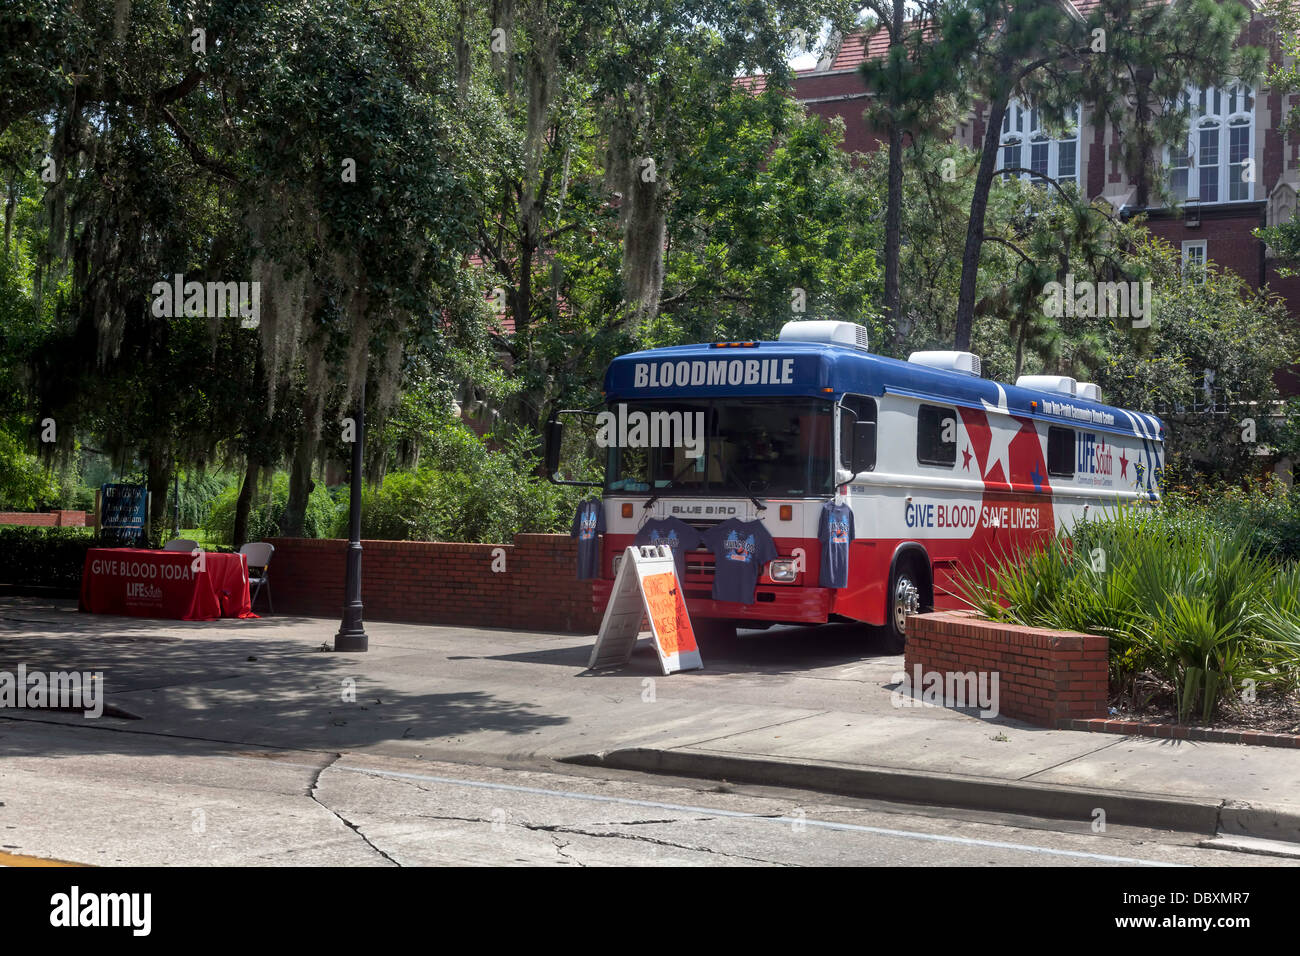 Bloodmobile on UF campus for blood drive. - Stock Image